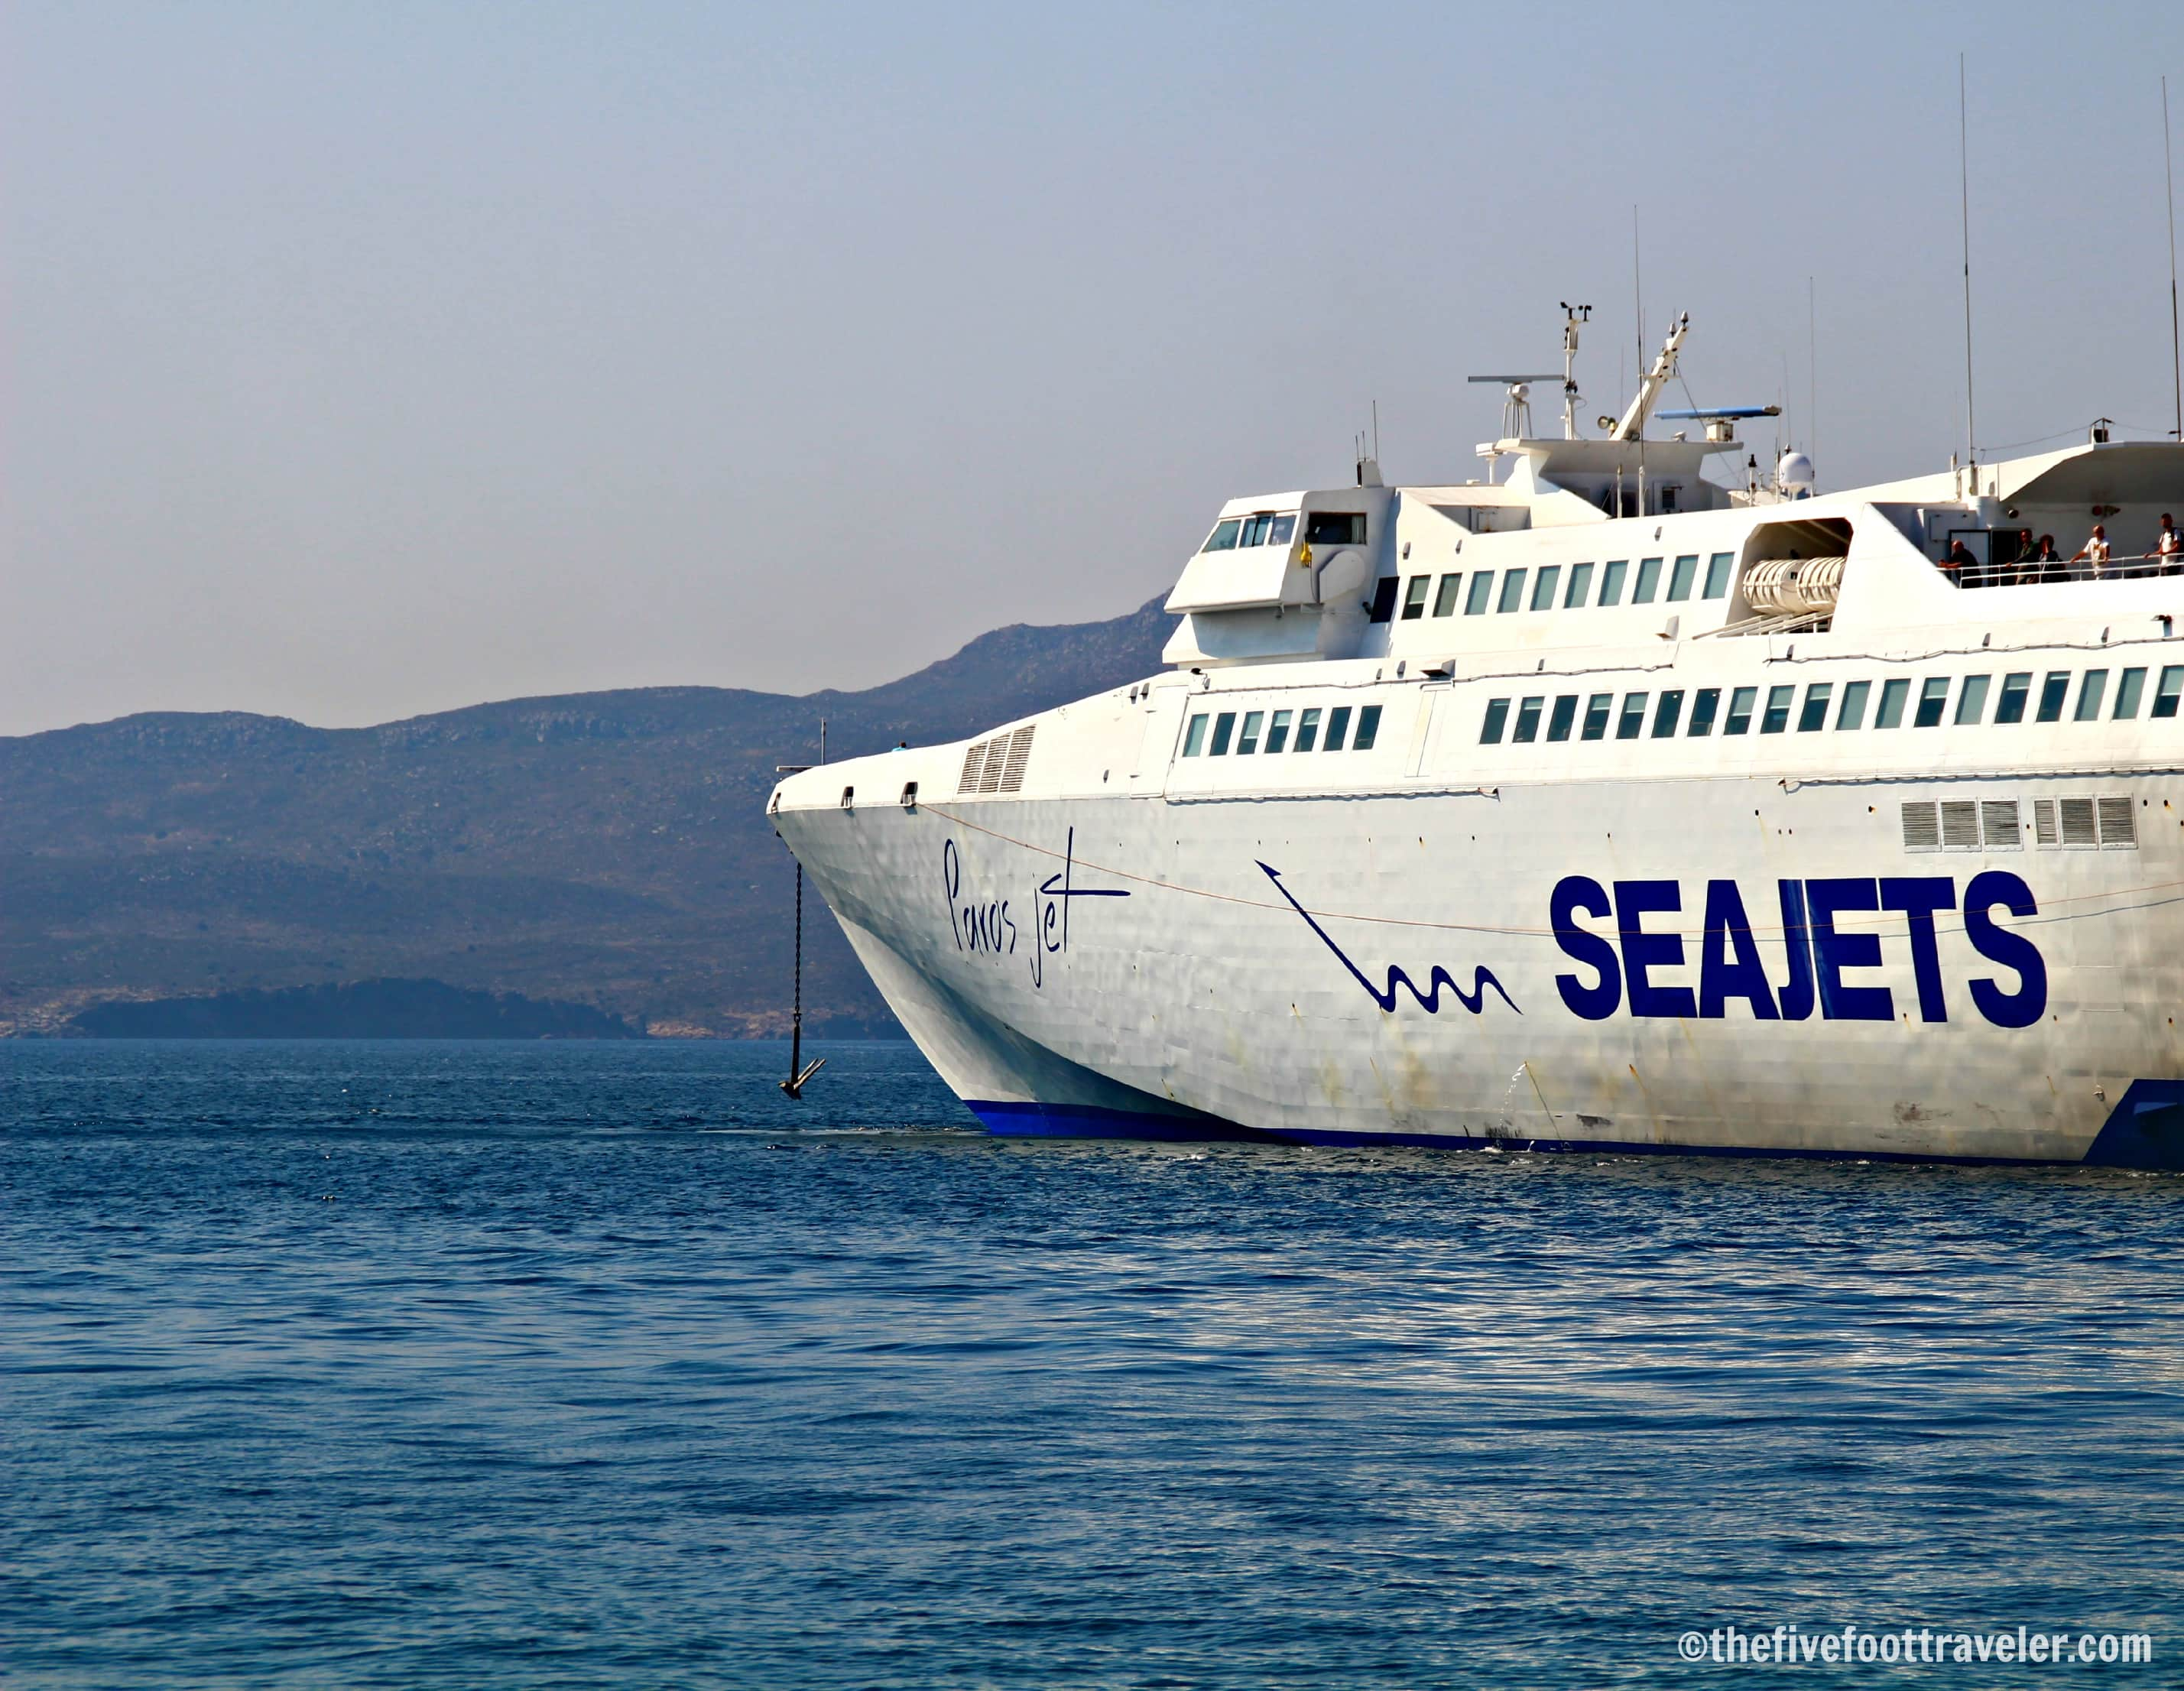 SeaJets Ferries: Island Hopping in Greece!